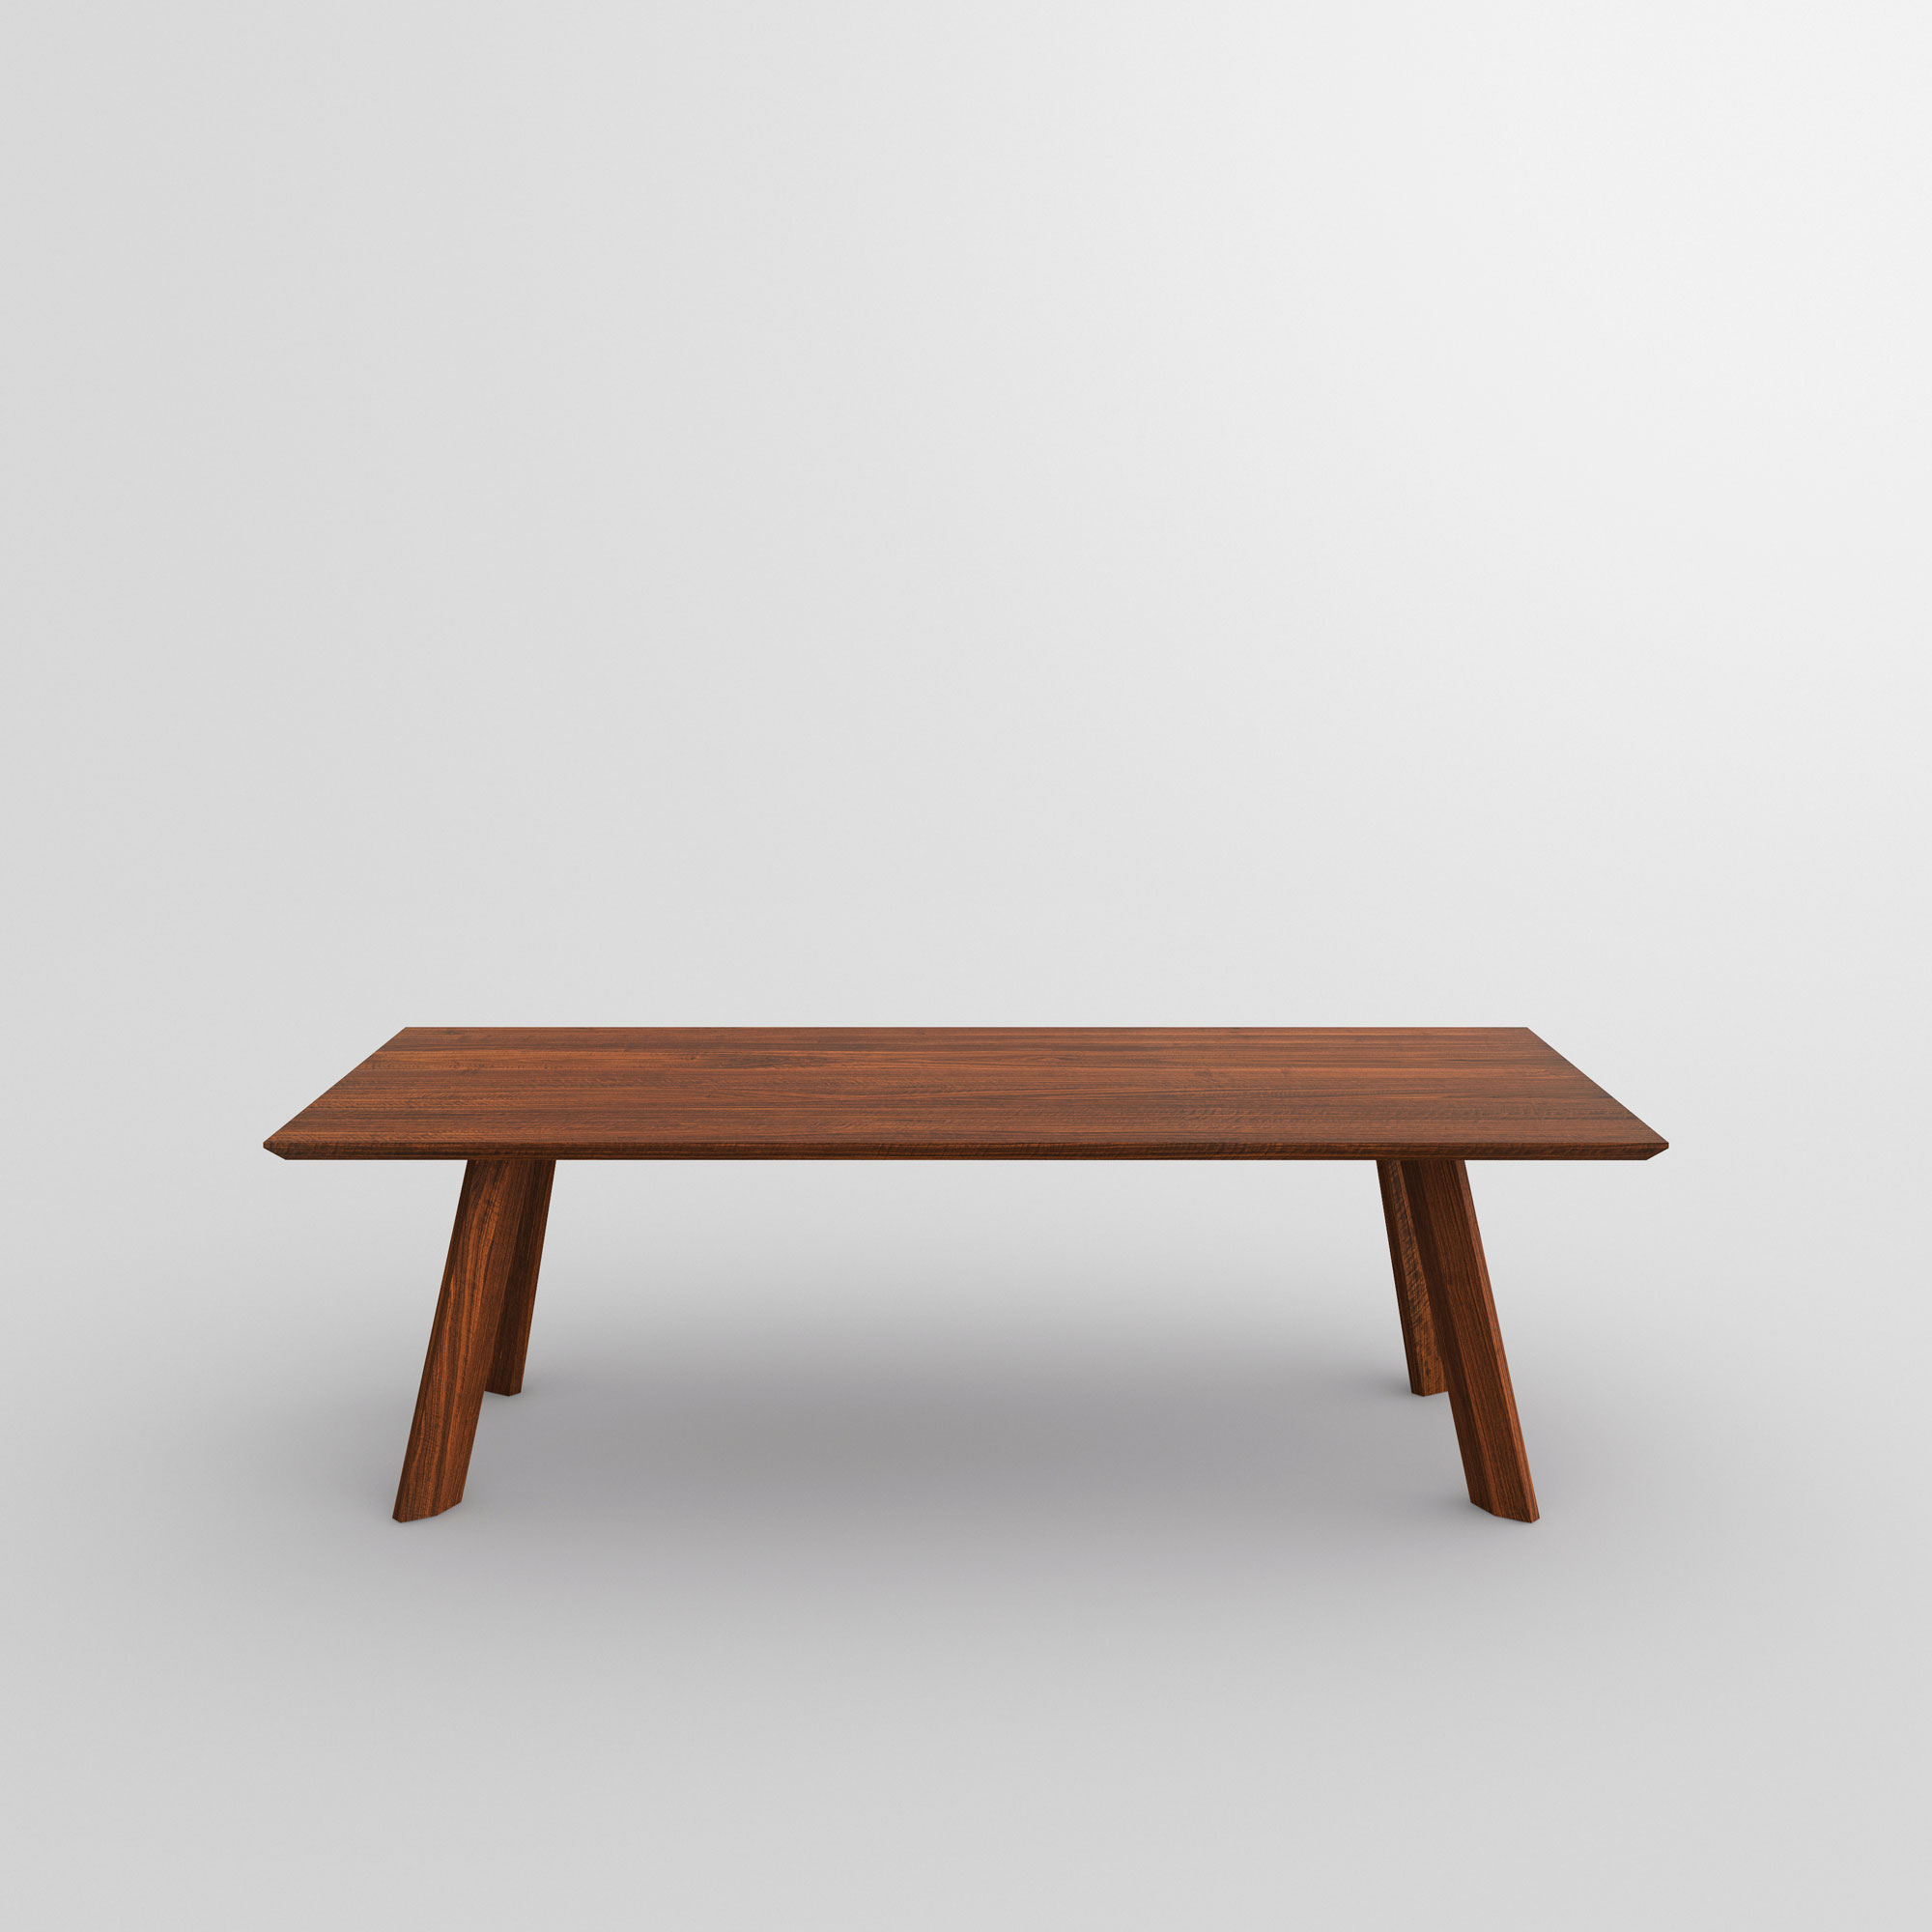 Designer Living Room Table RHOMBI BASIC cam3 custom made in solid wood by vitamin design